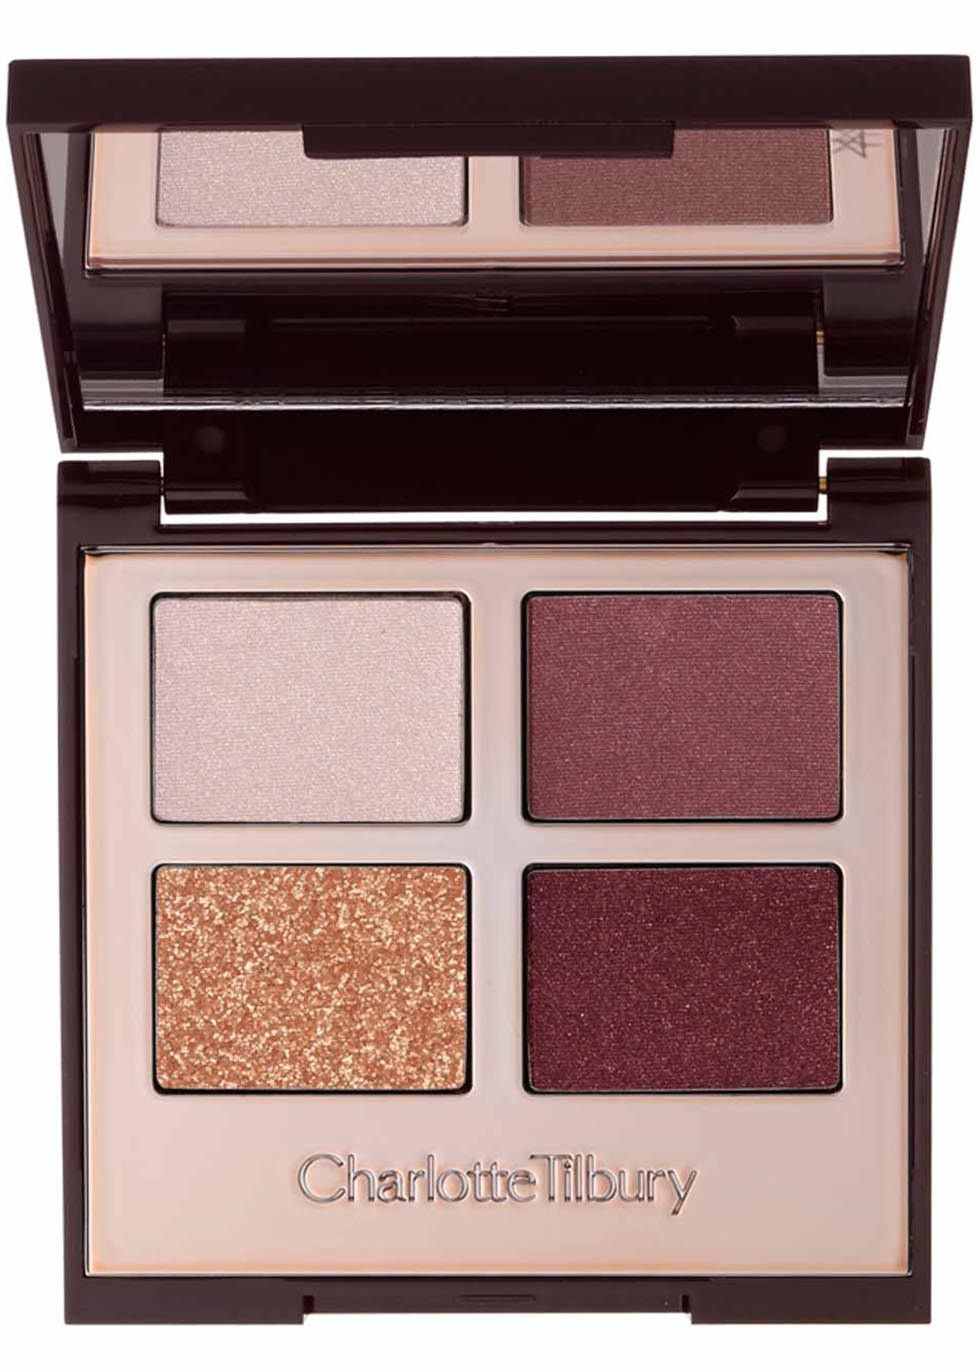 This product is part of the Holy Grail, the quest for eternal beauty. Join the journey Charlotte Tilbury has de-coded the secrets to iconic, mesmerising eyes with her Colour-Coded Eye Shadow Palettes. Each one contains four harmonious colour ways that offer a complete desk to disco eye colour wardrobe that is easy to use.